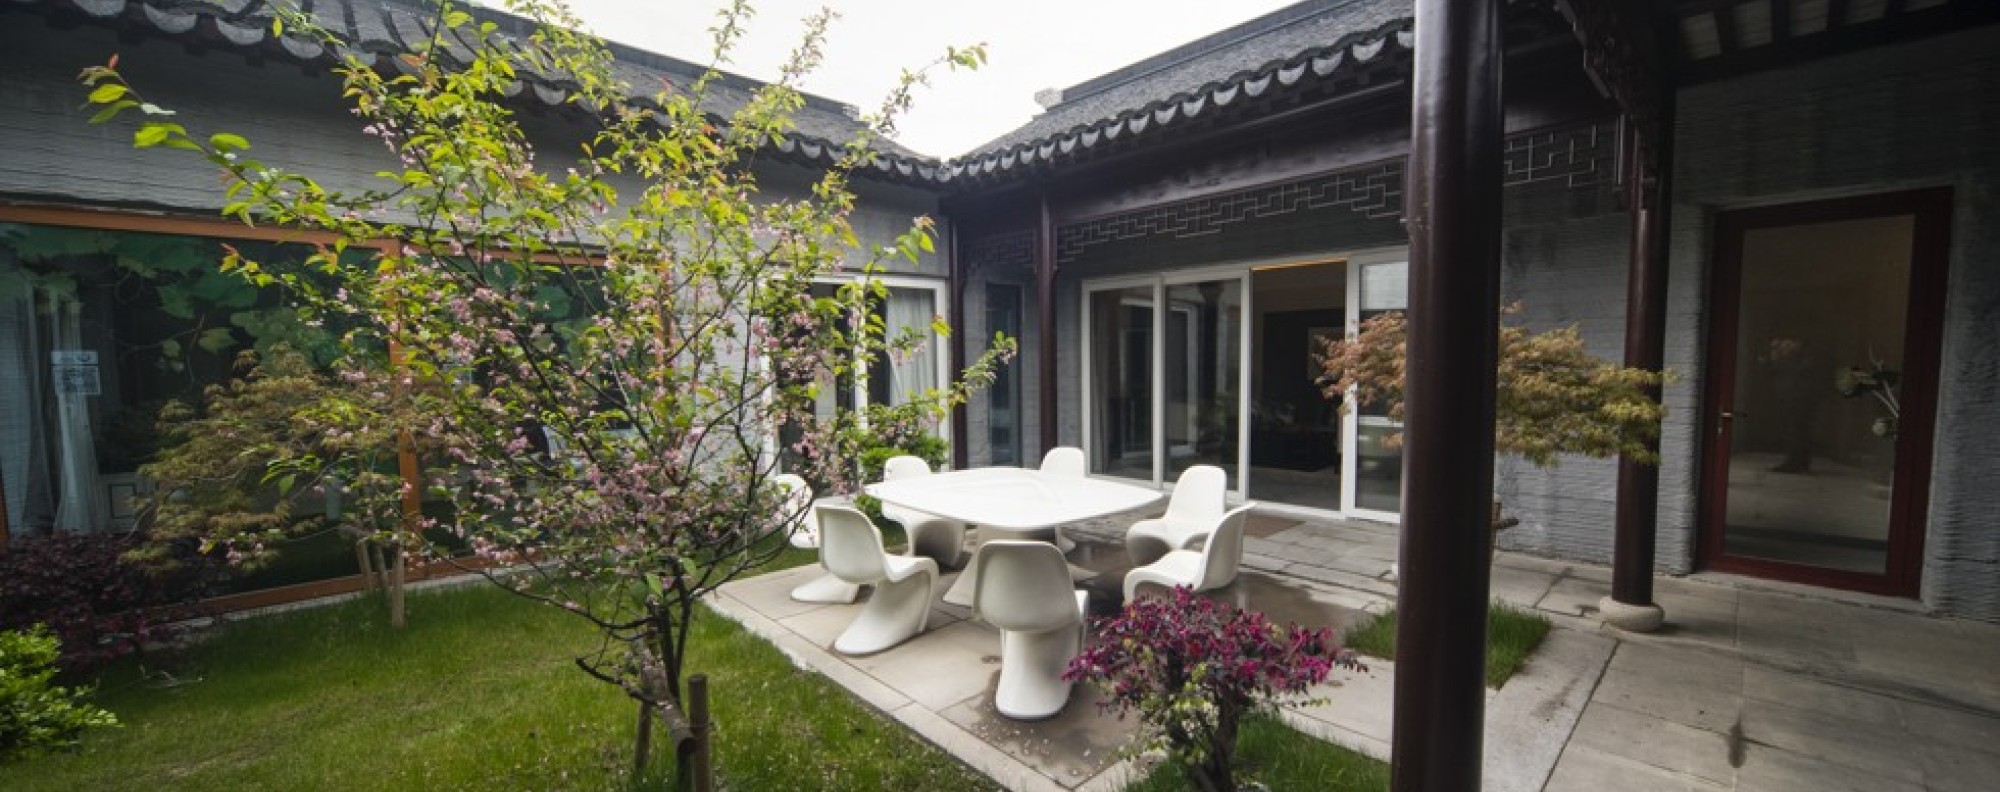 A 3D printed Chinese style courtyard home built by